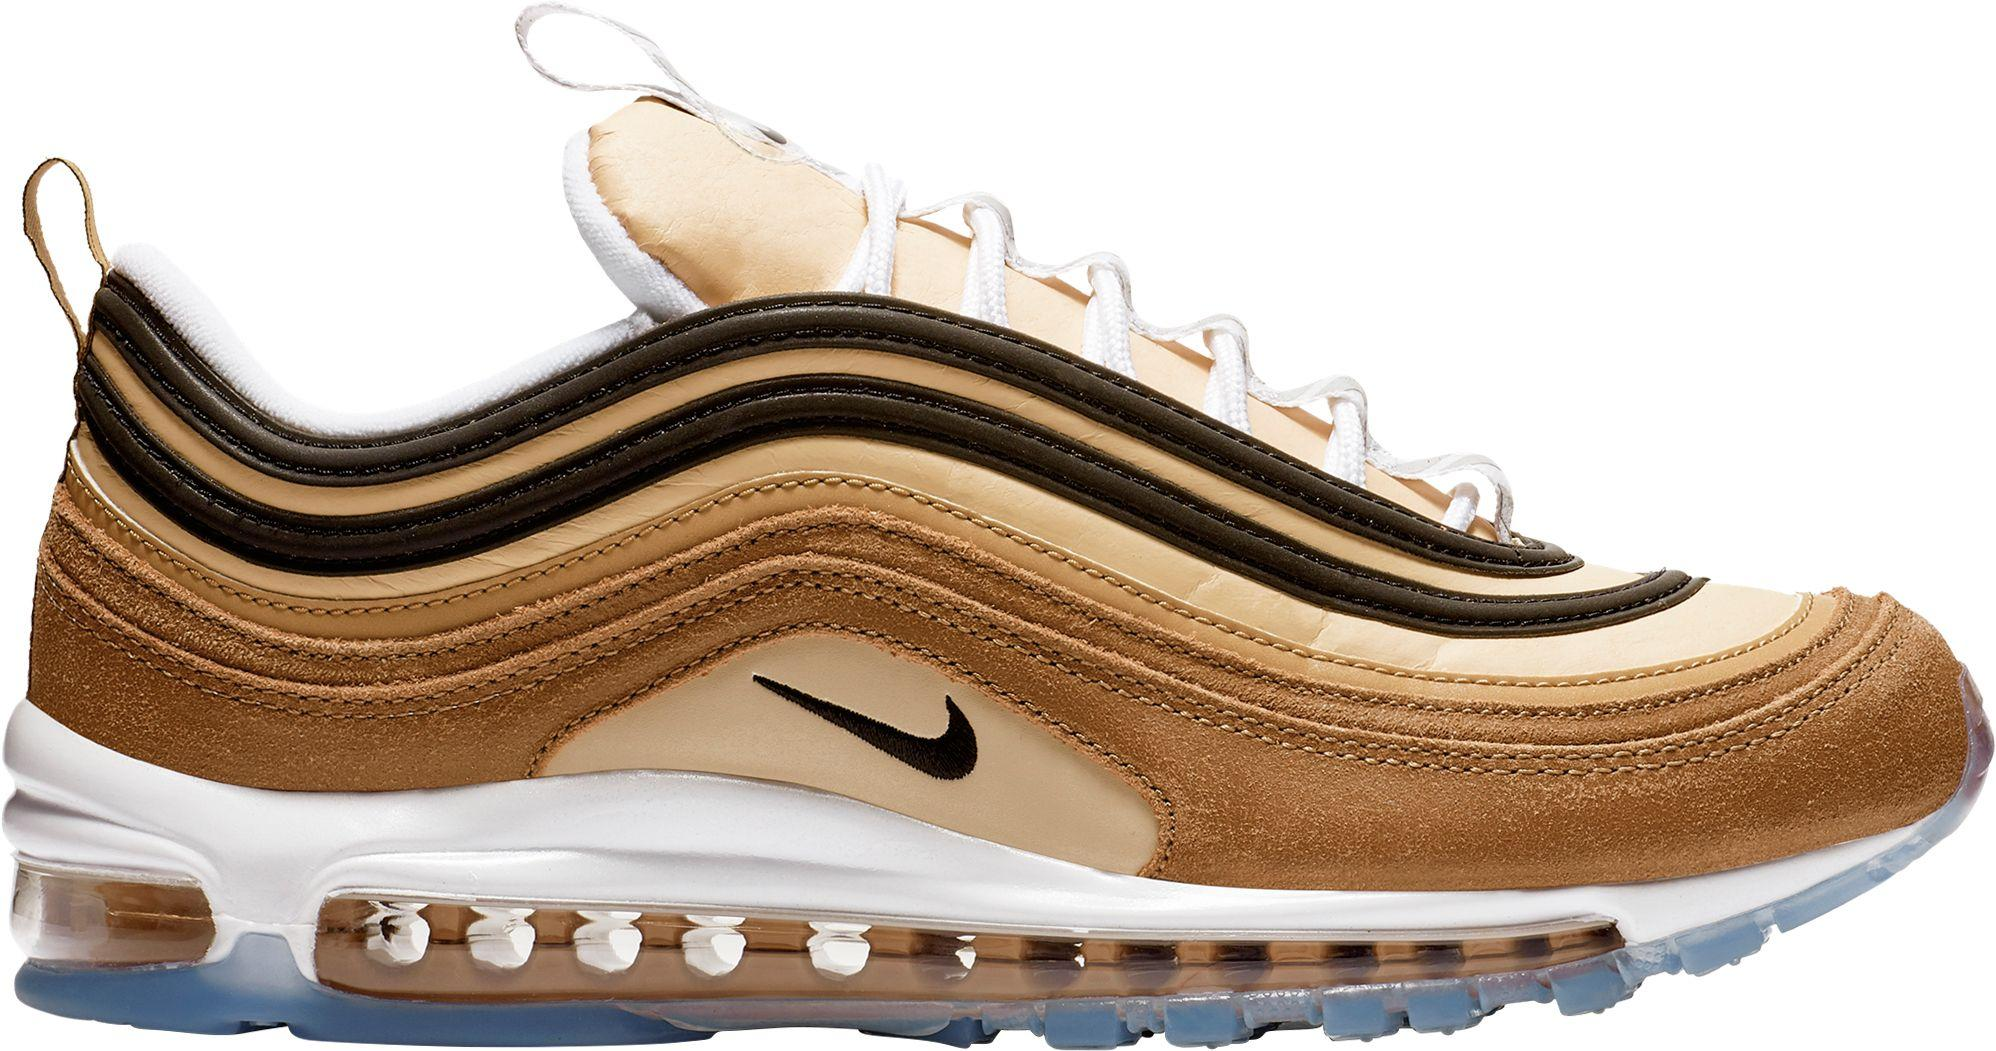 007e5addf6 Nike Air Max 97 Shoes in Metallic for Men - Lyst